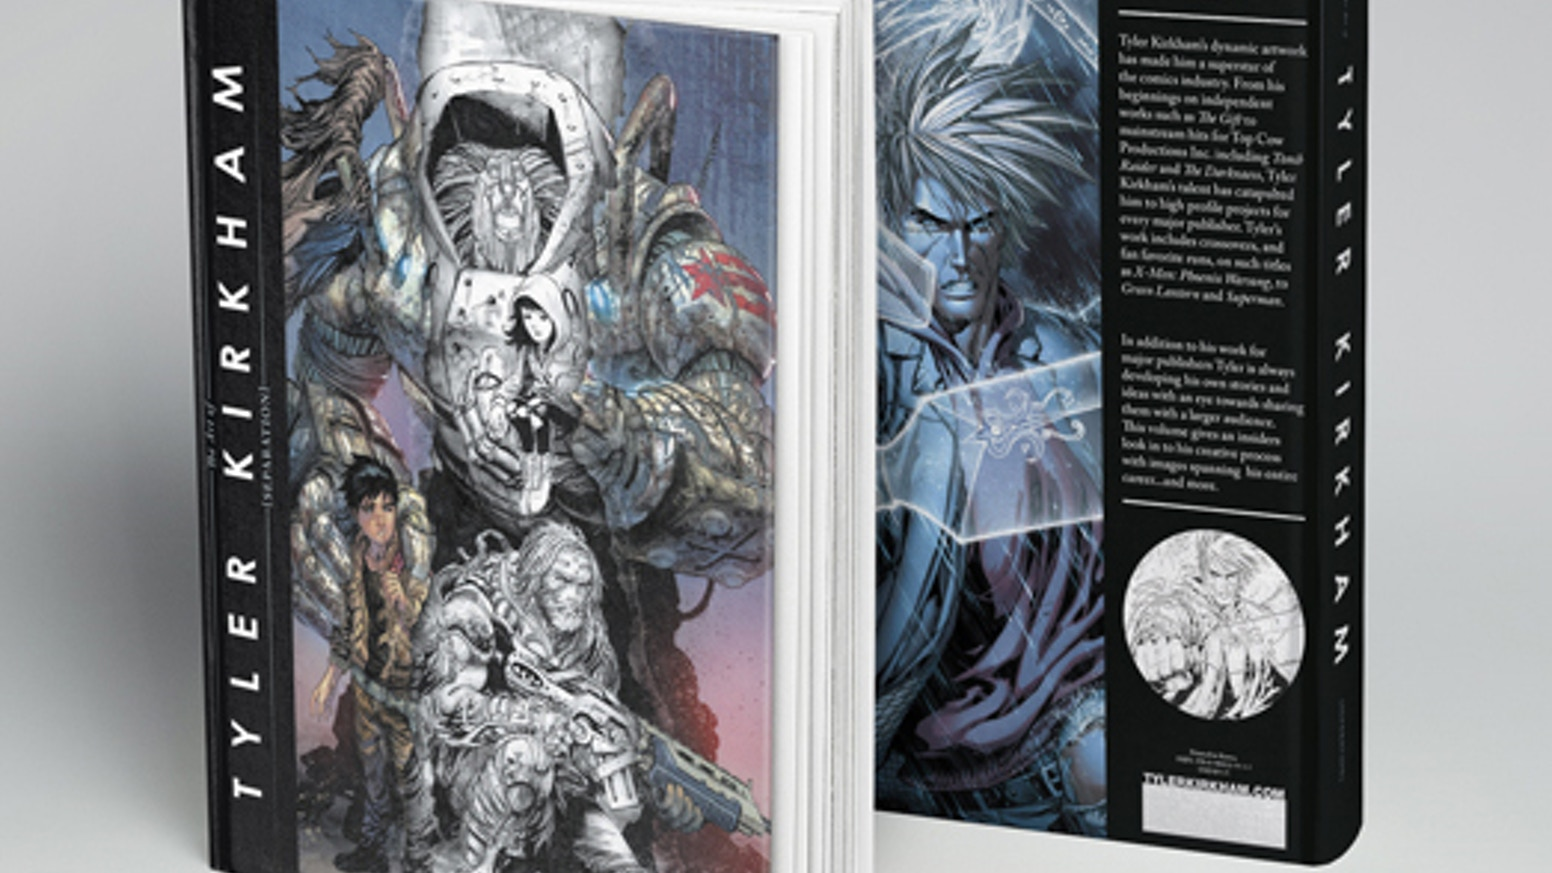 THE FIRST EVER Kirkham art book! Featuring over 13 years of comic book art, commissions, sketches, concept and graphic art. 272 pages!